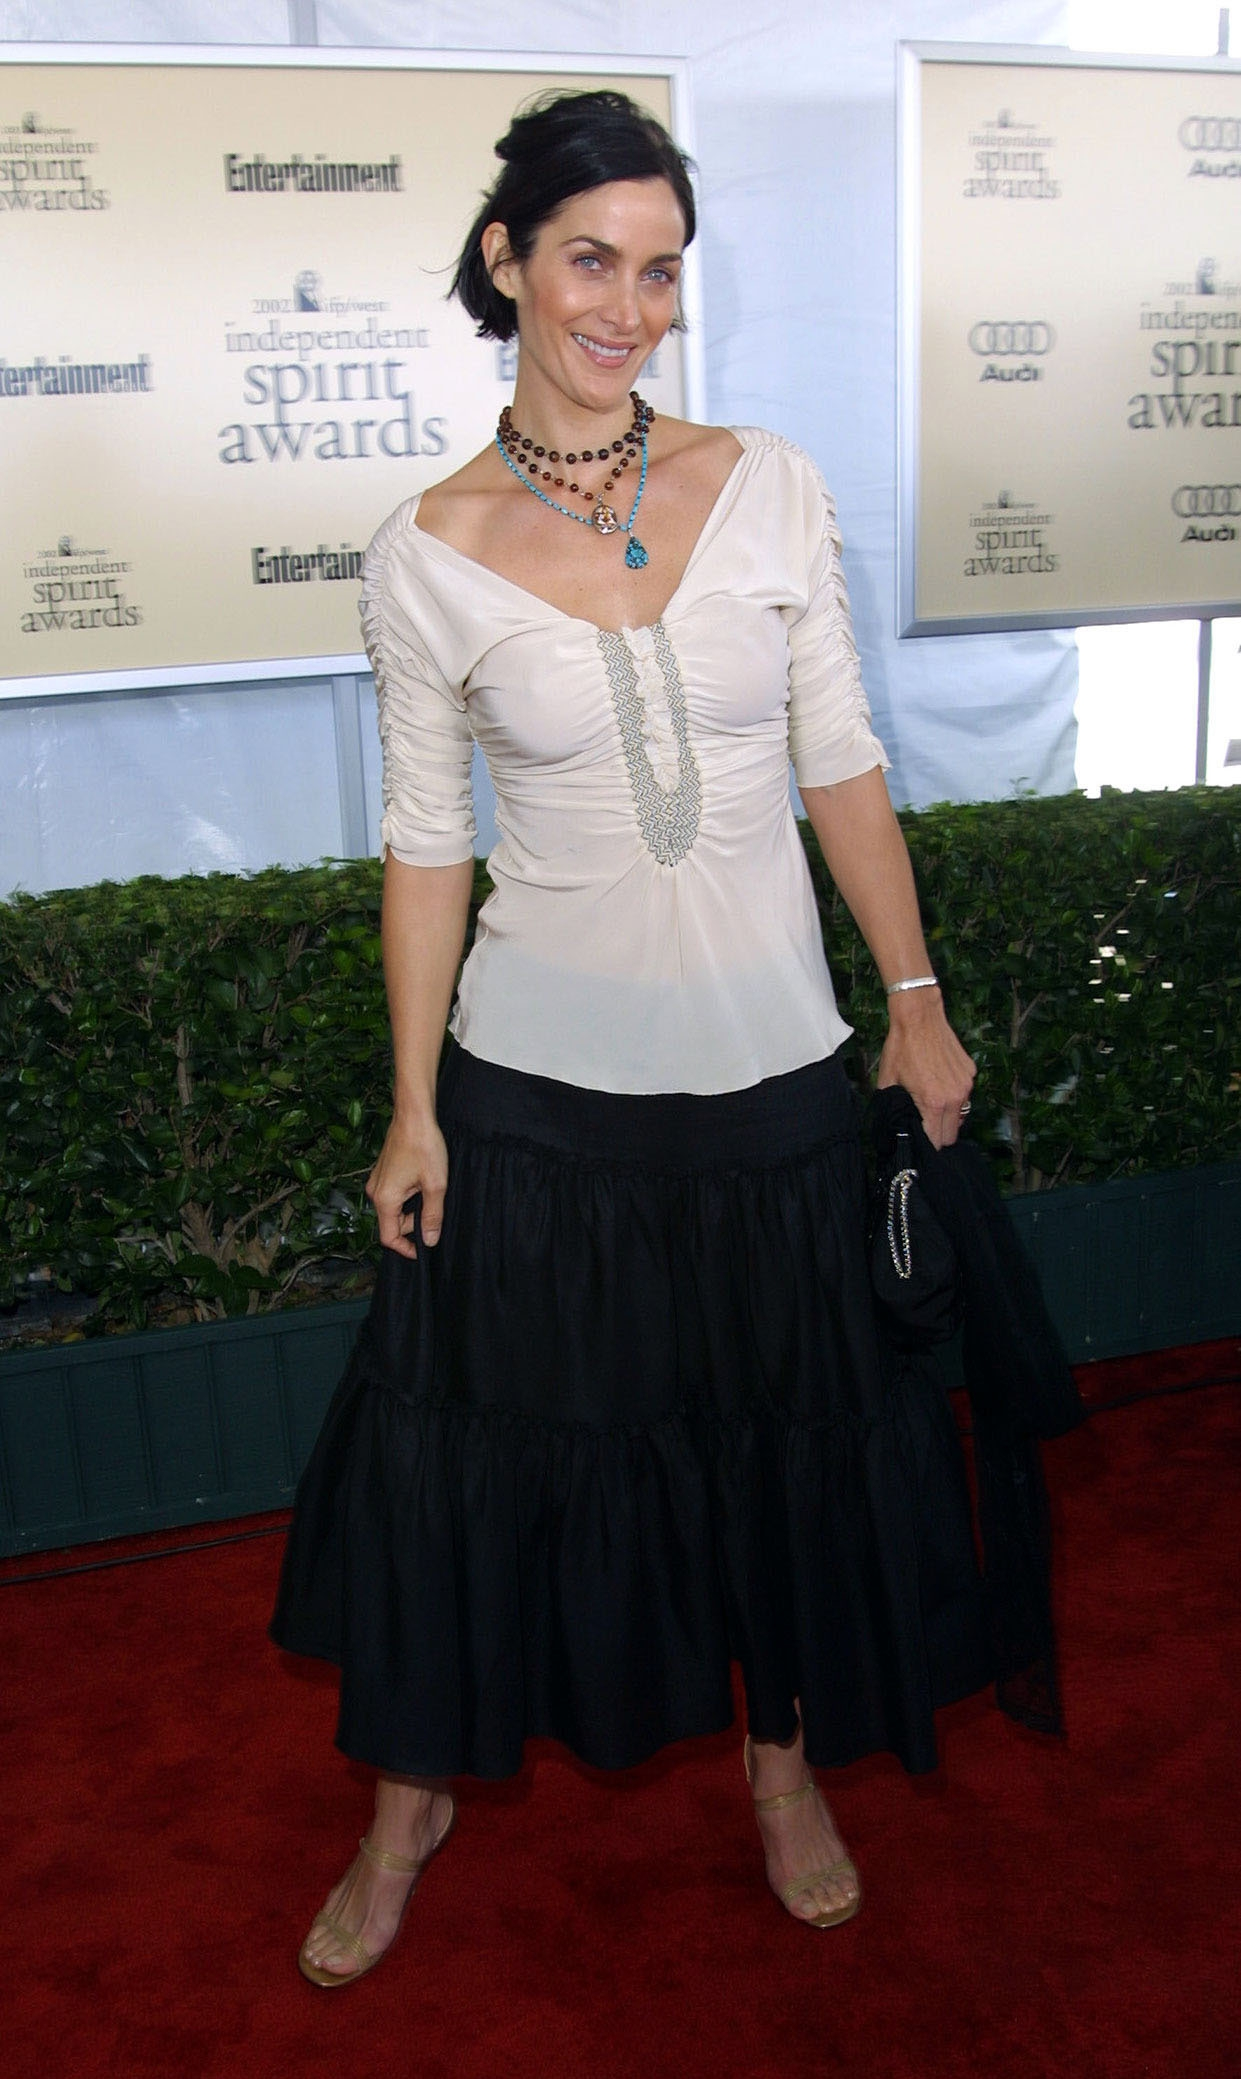 Carrie Anne Moss Red carpet